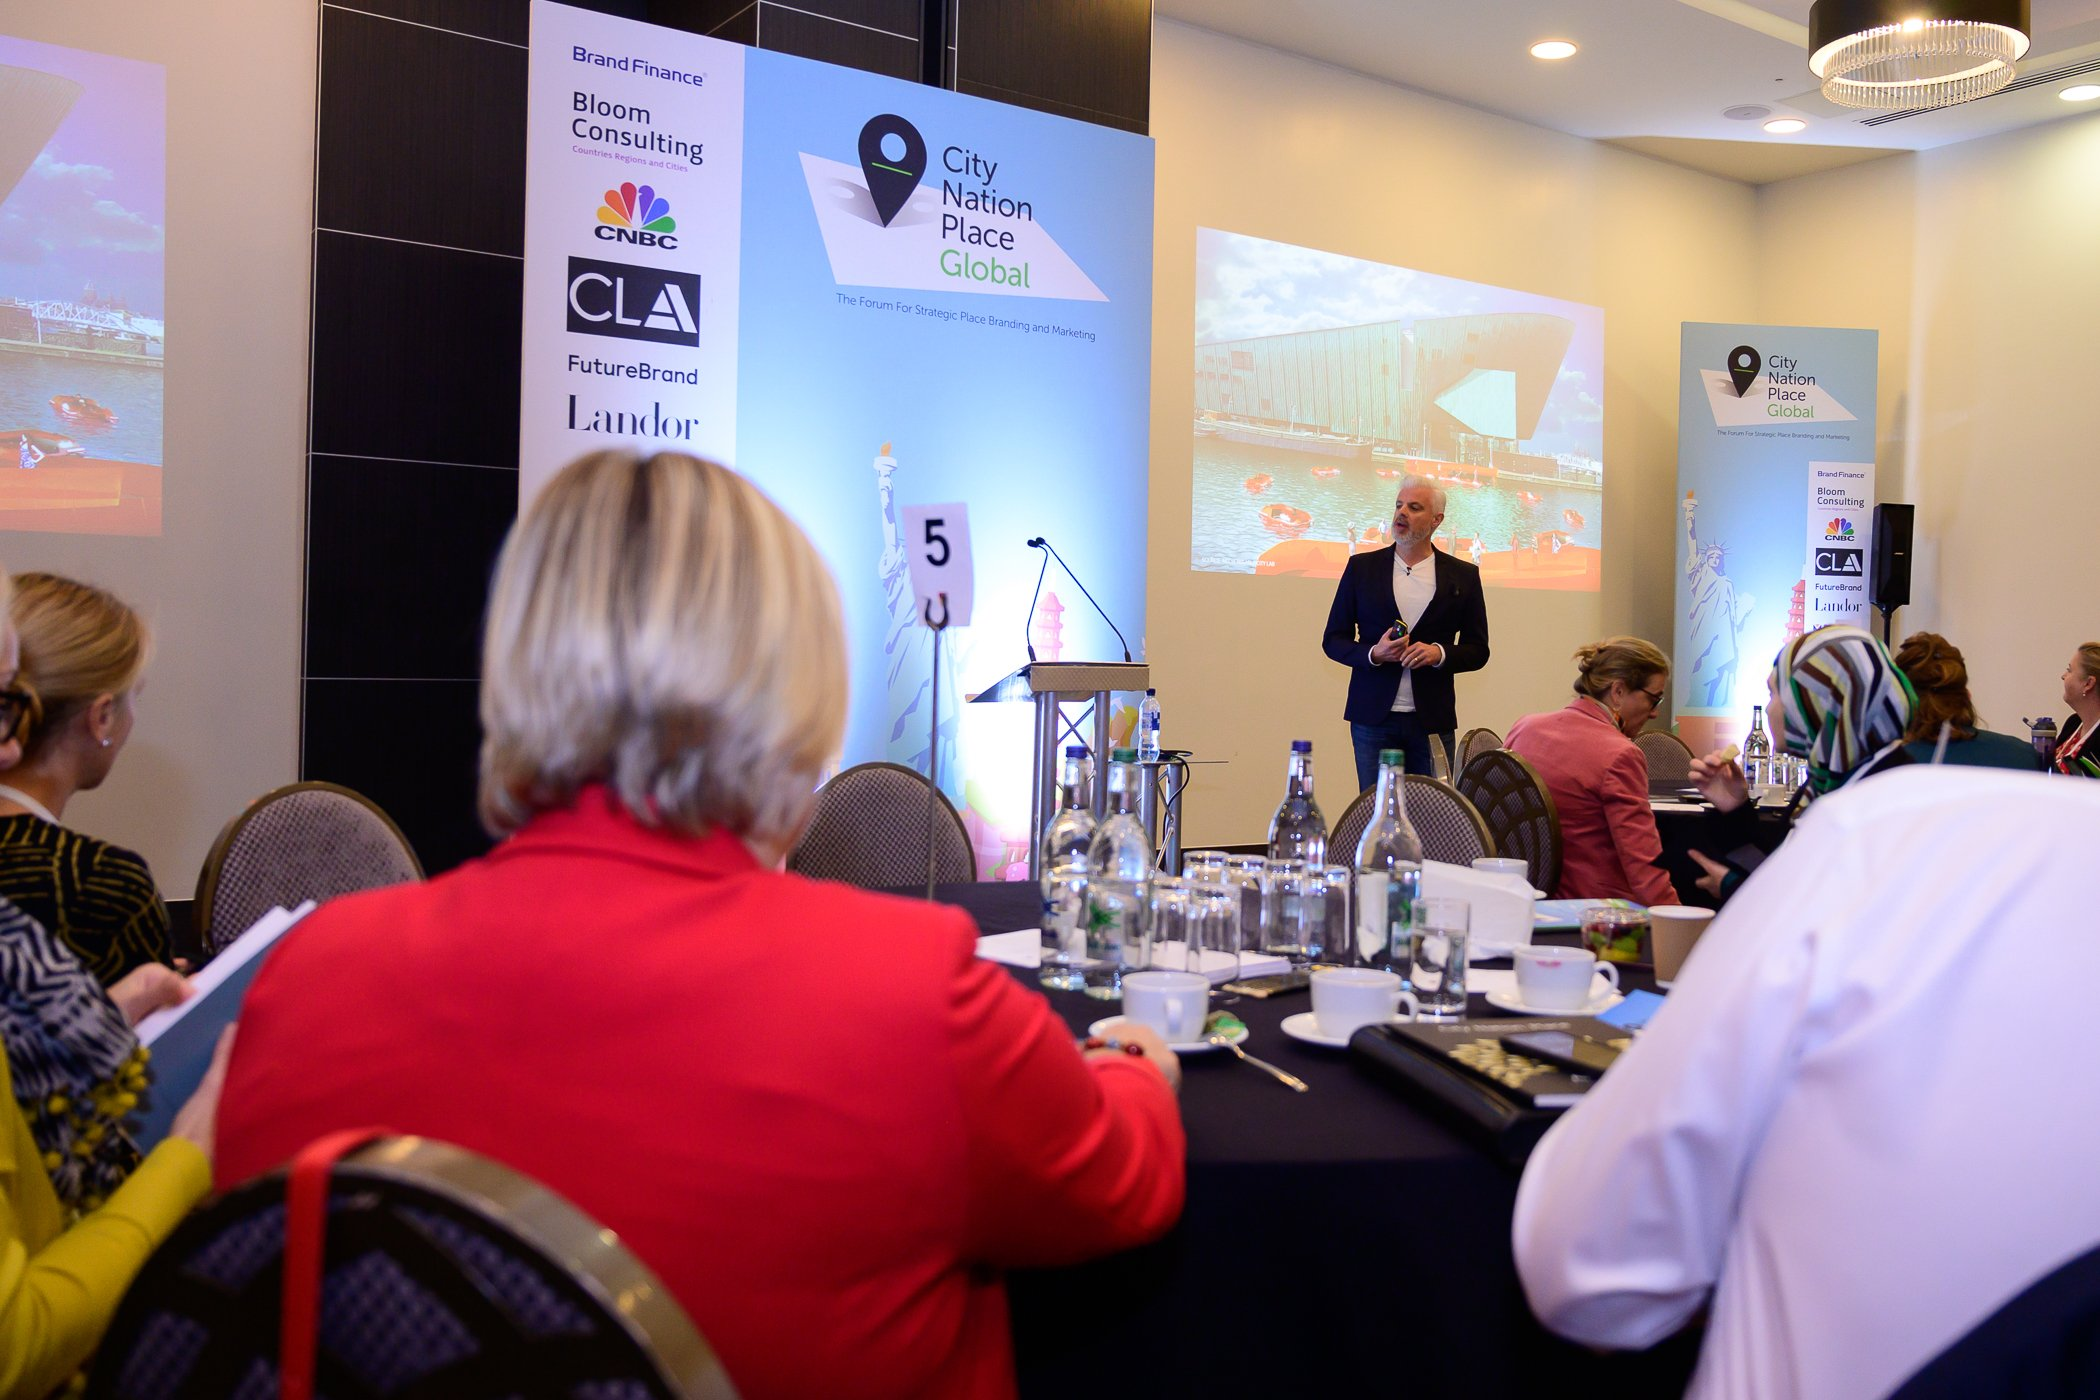 Photo of Jon Tipple from Future Brand presenting at their Breakfast Briefing at City Nation Place Global 2019